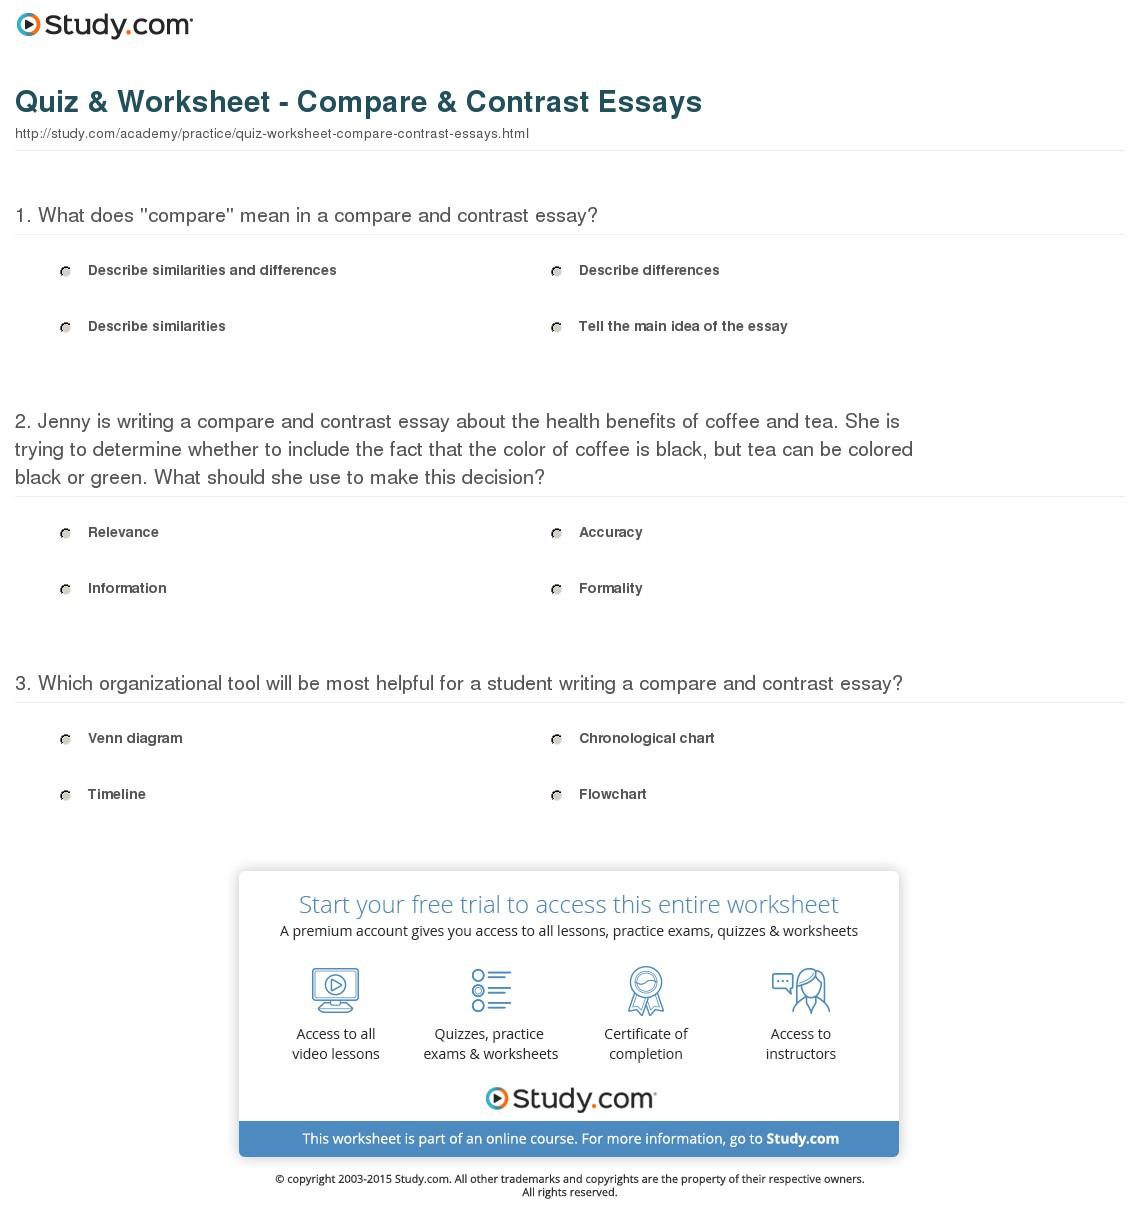 021 Quiz Worksheet Compare Contrast Essays Essay Example Sensational And Sample Introduction For Comparison Point-by-point Of An Paragraph Full